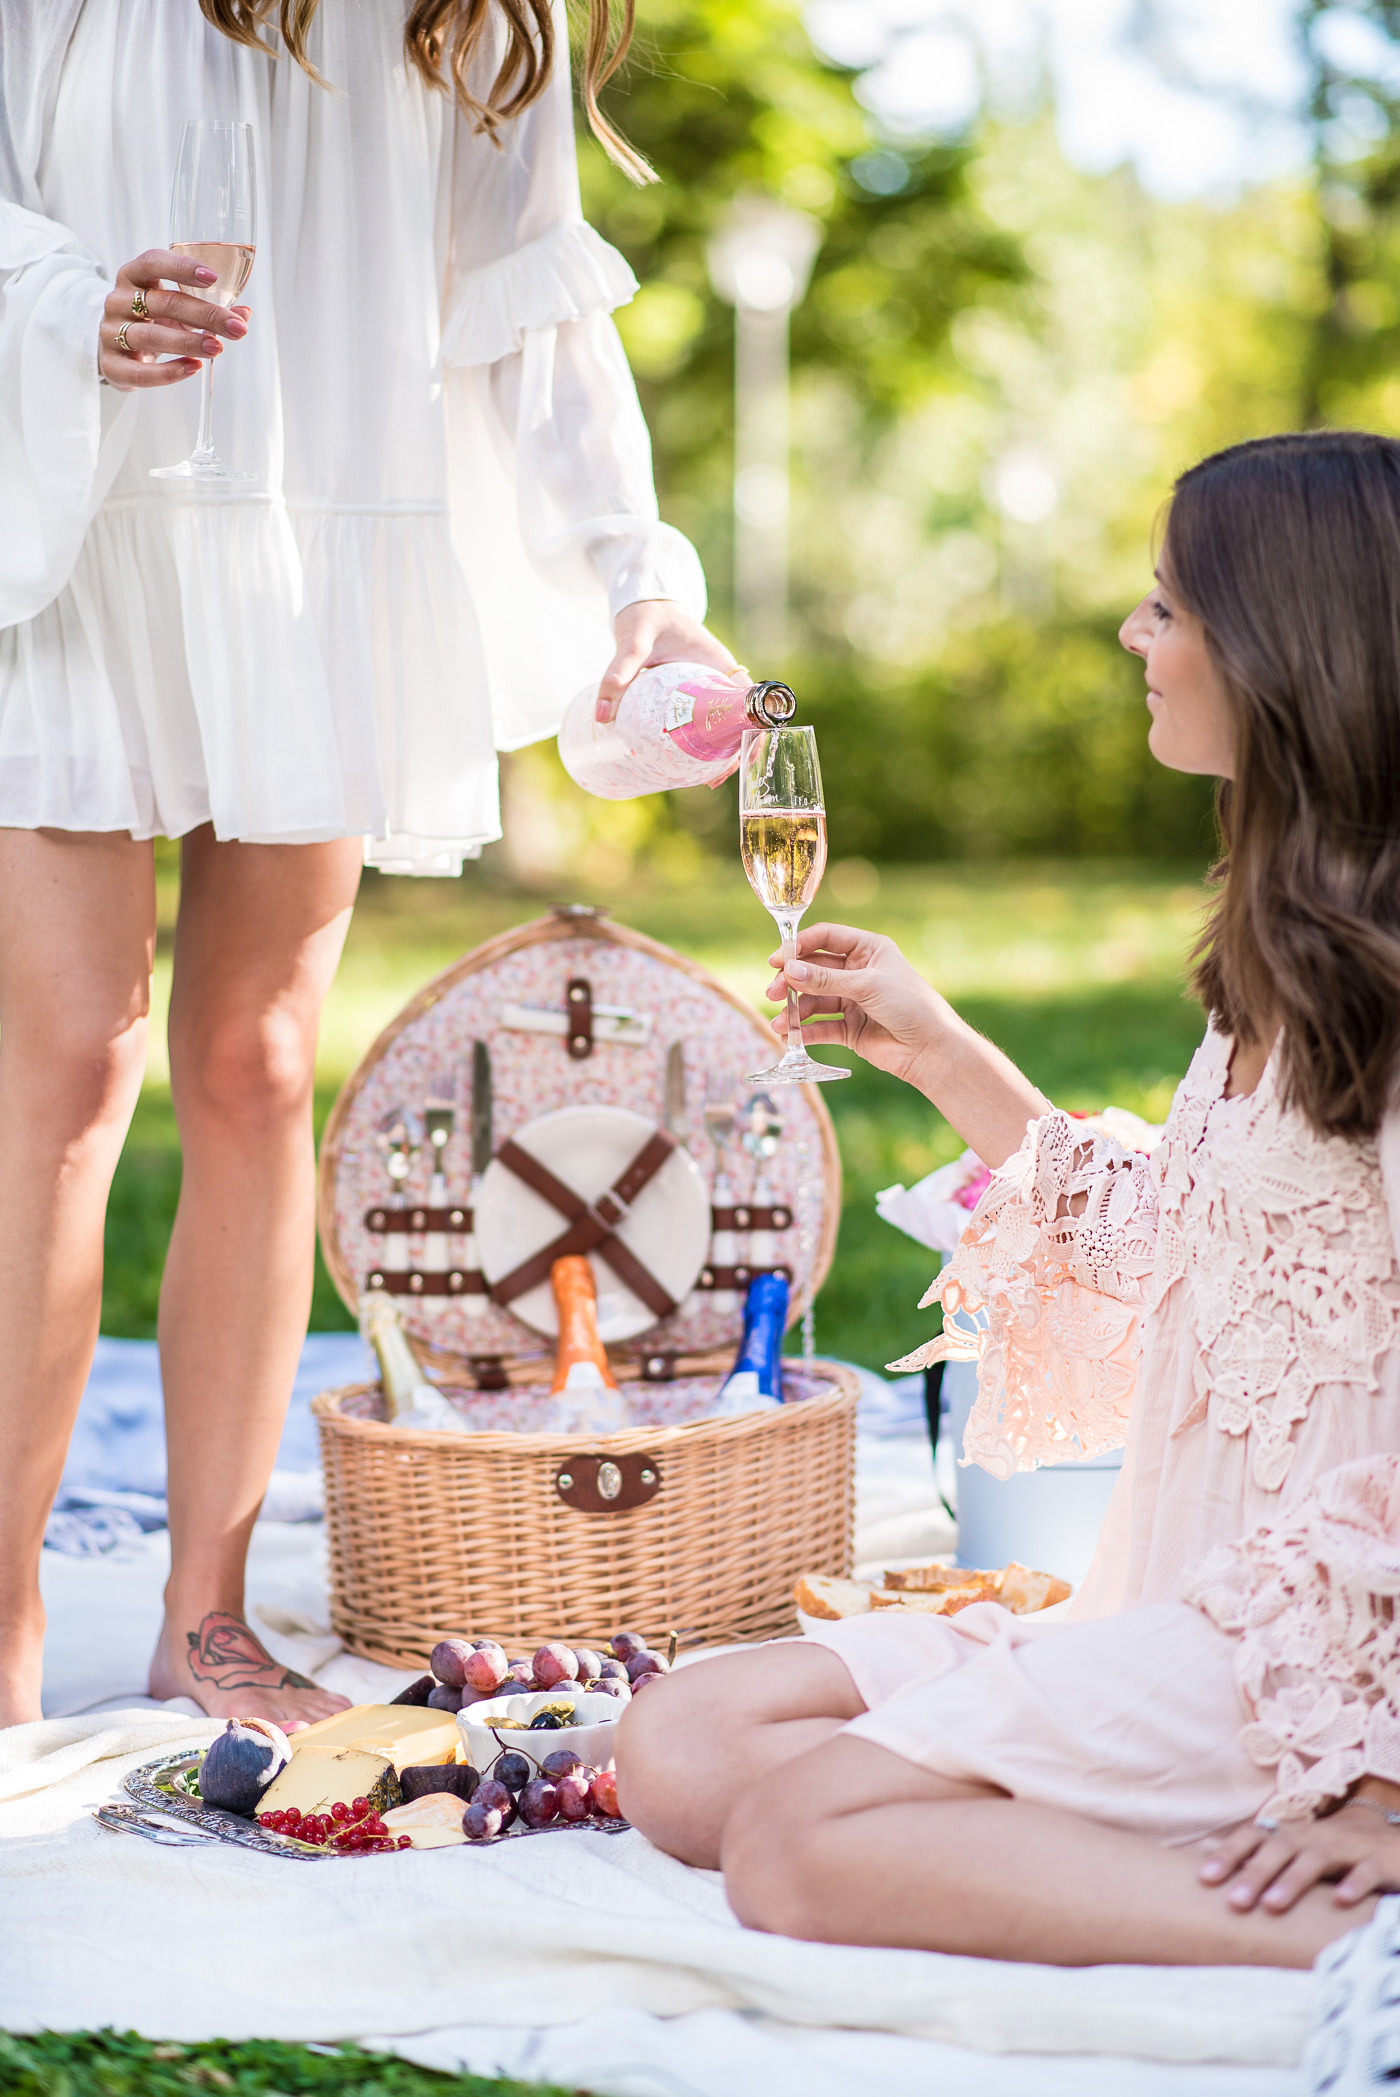 picknick_with_jules_mumm_kaviar_gauche_6